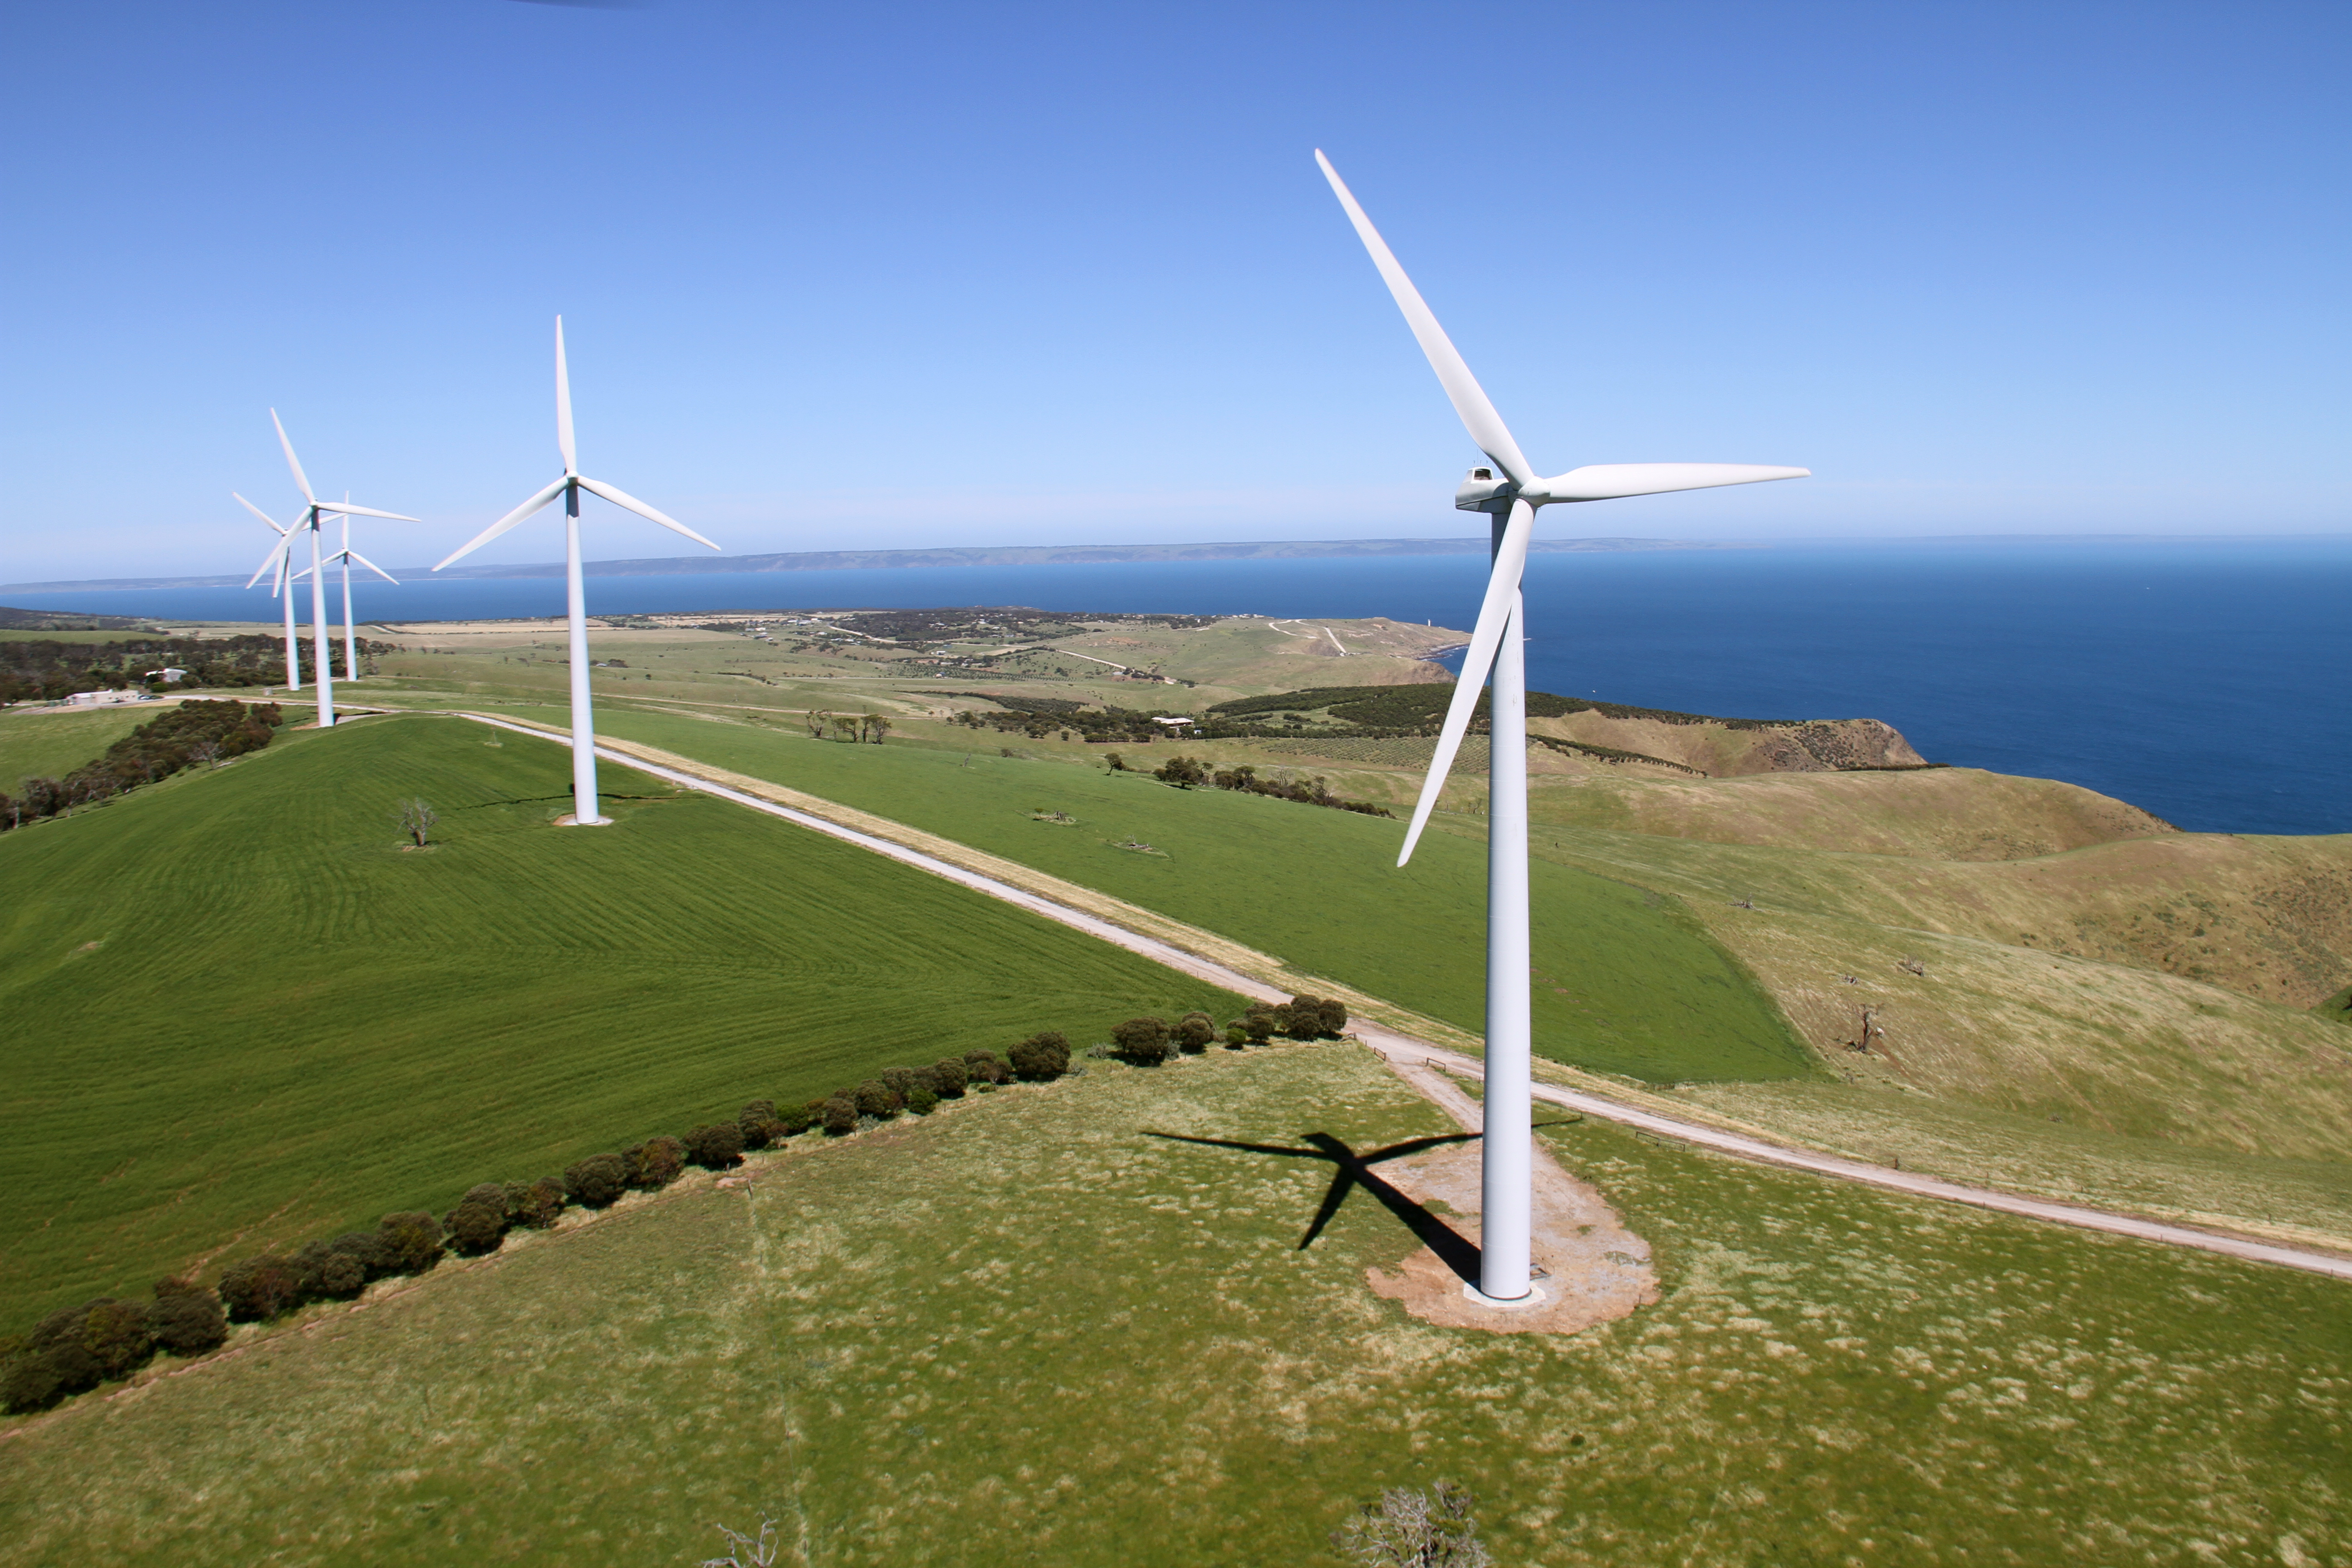 wind farm jobs in Australia - Airswift